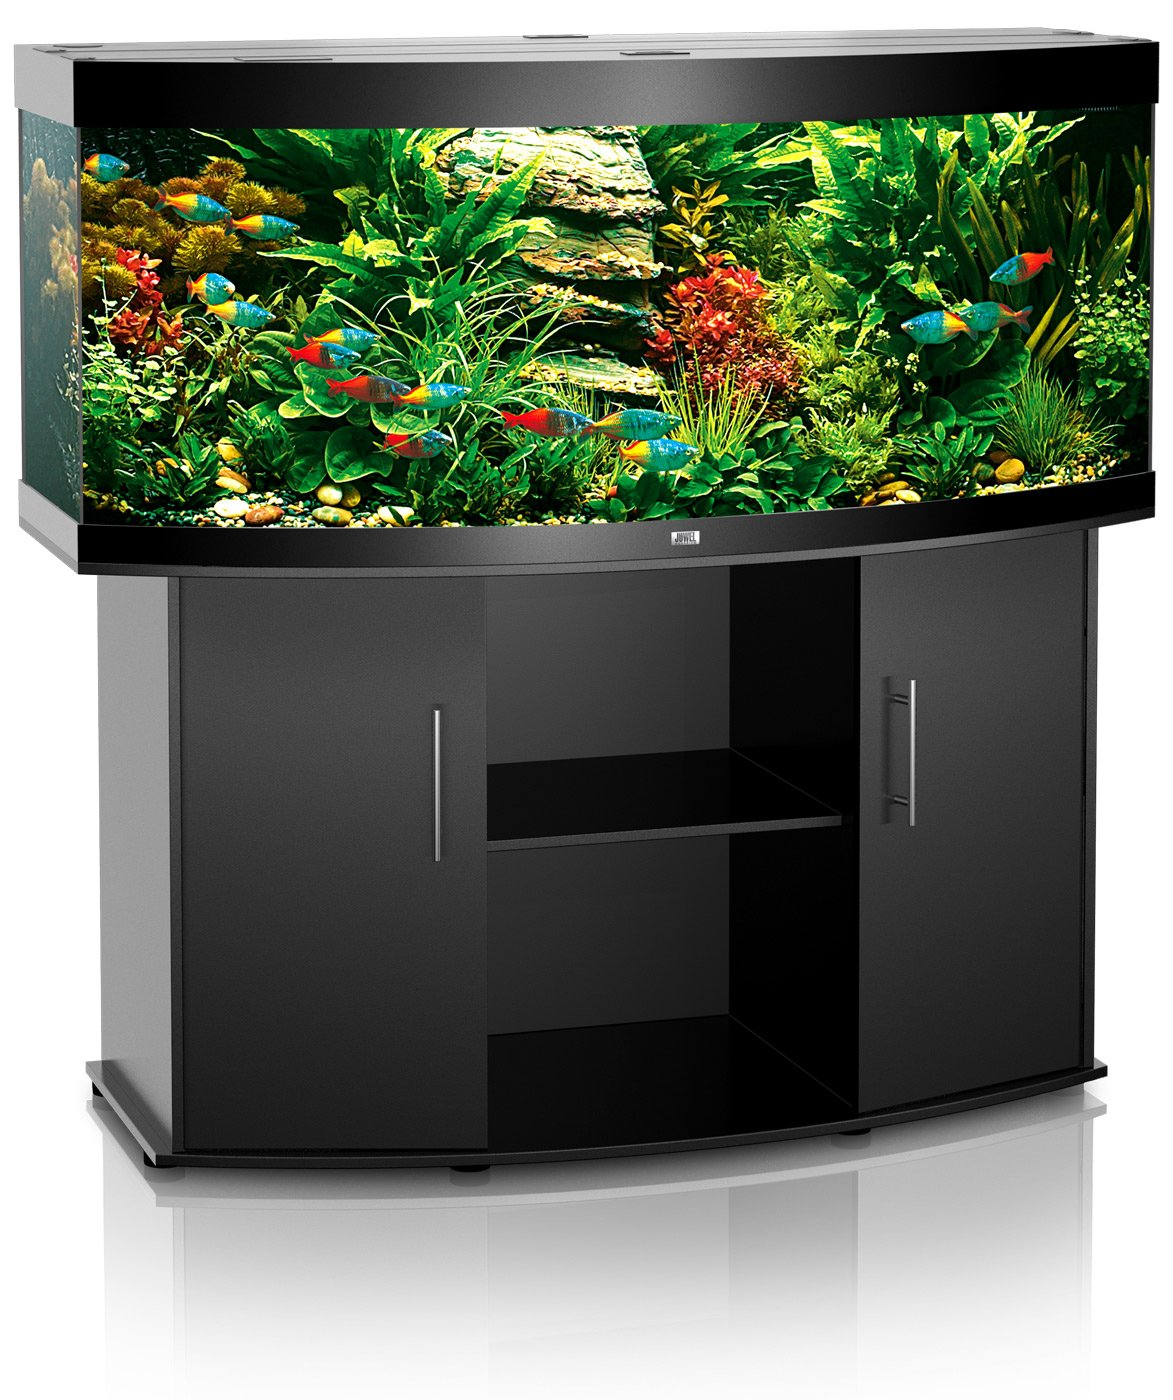 prix aquarium. Black Bedroom Furniture Sets. Home Design Ideas